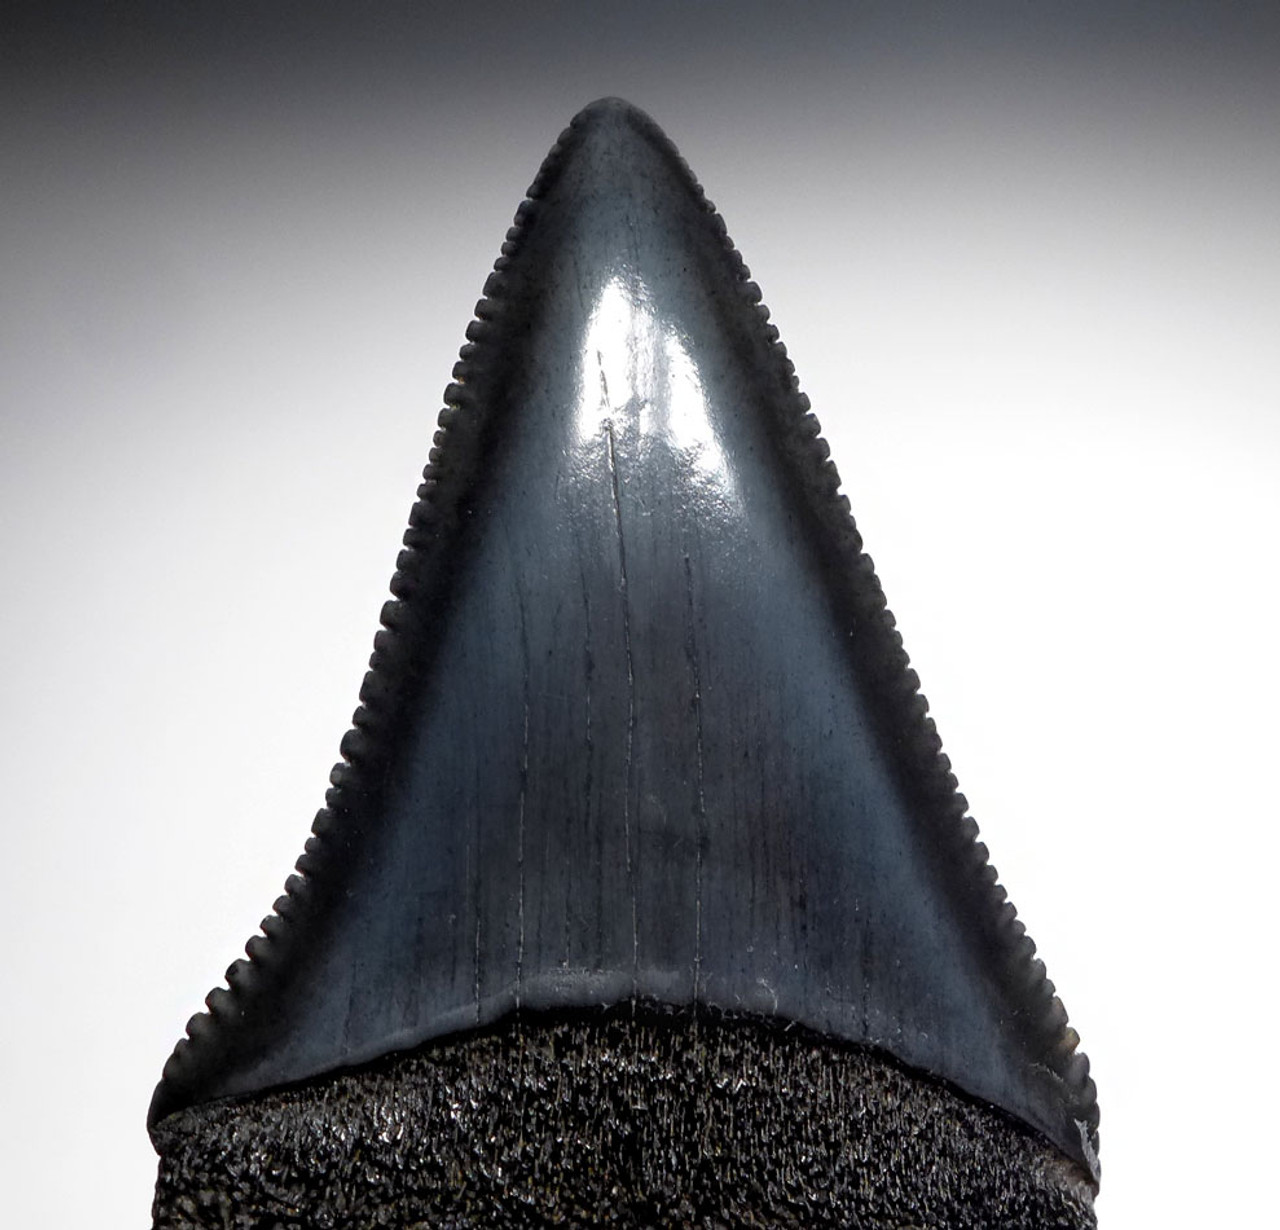 INVESTMENT GRADE LARGE FOSSIL GREAT WHITE SHARK TOOTH 2.15 INCH CARCHARIAS *SHX077